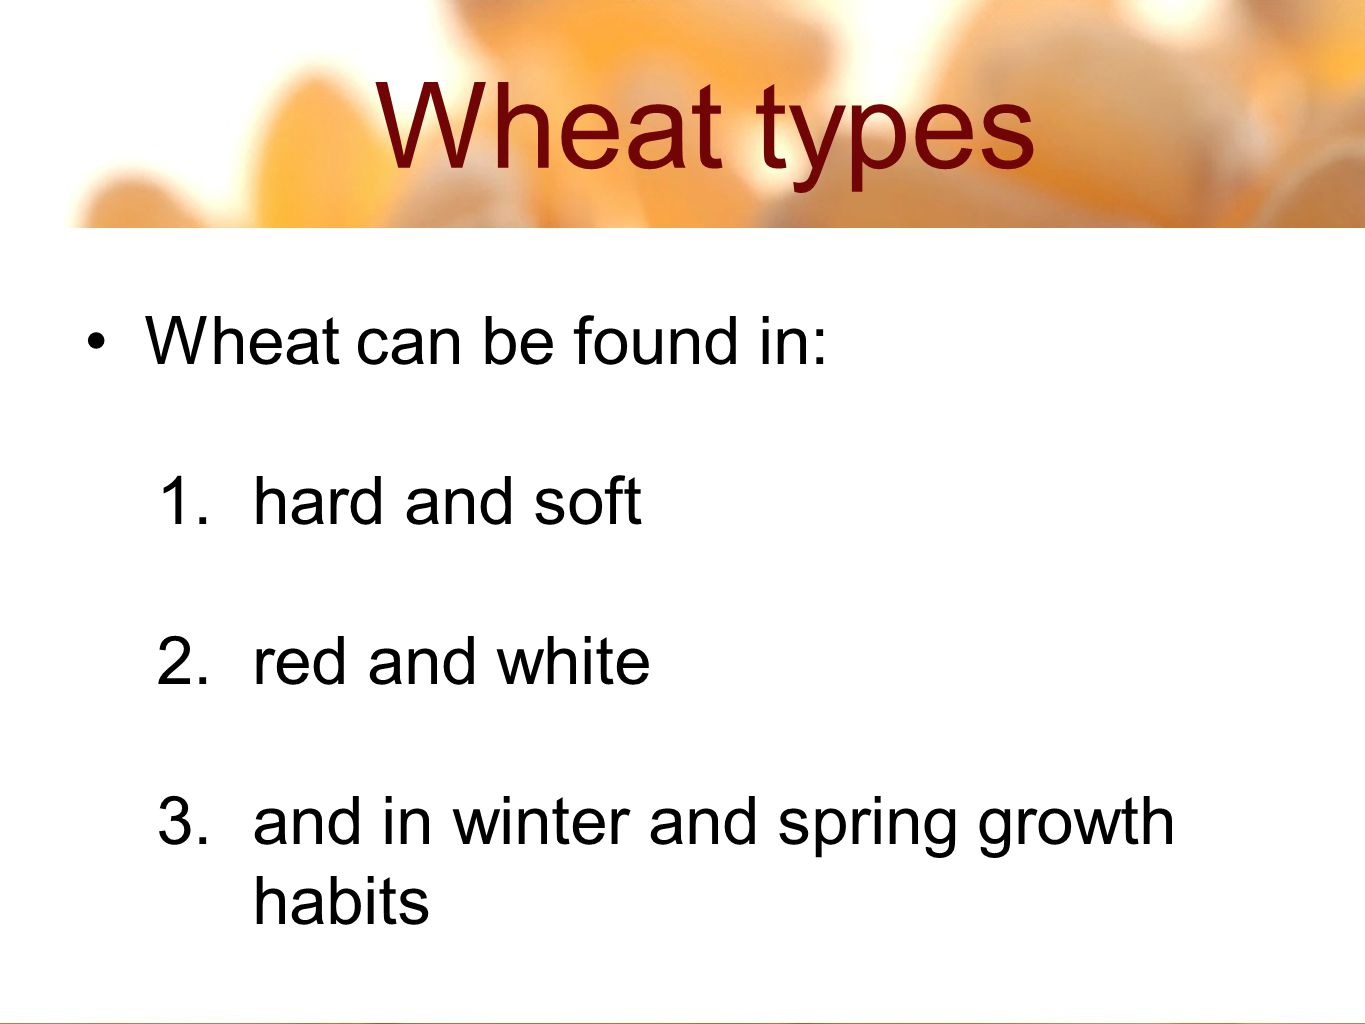 Wheat types 2 3 Wheat can be found in: 1.hard and soft 2.red and white 3.and in winter and spring growth habits